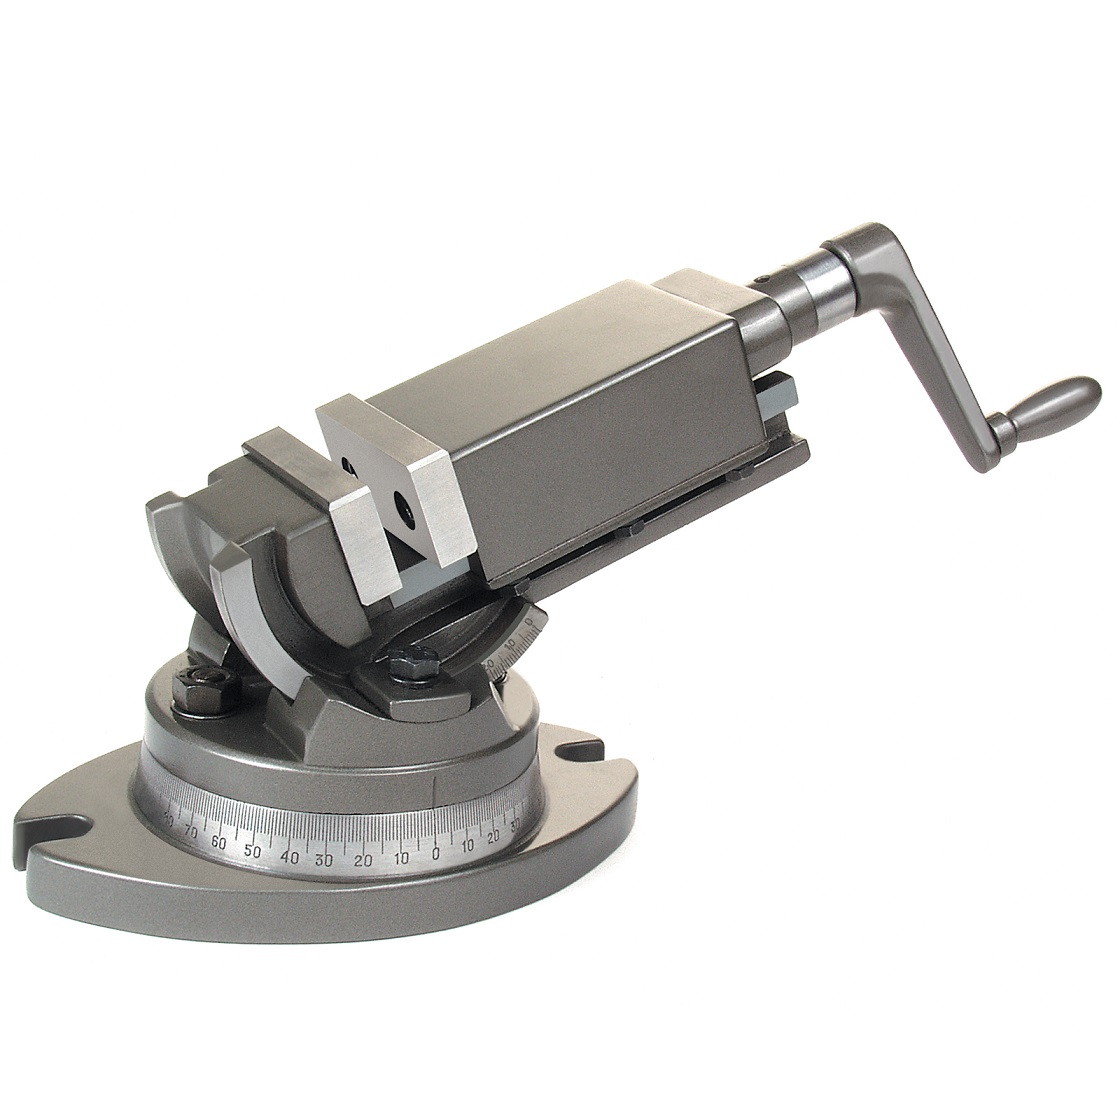 Two Way Milling Machine Vise